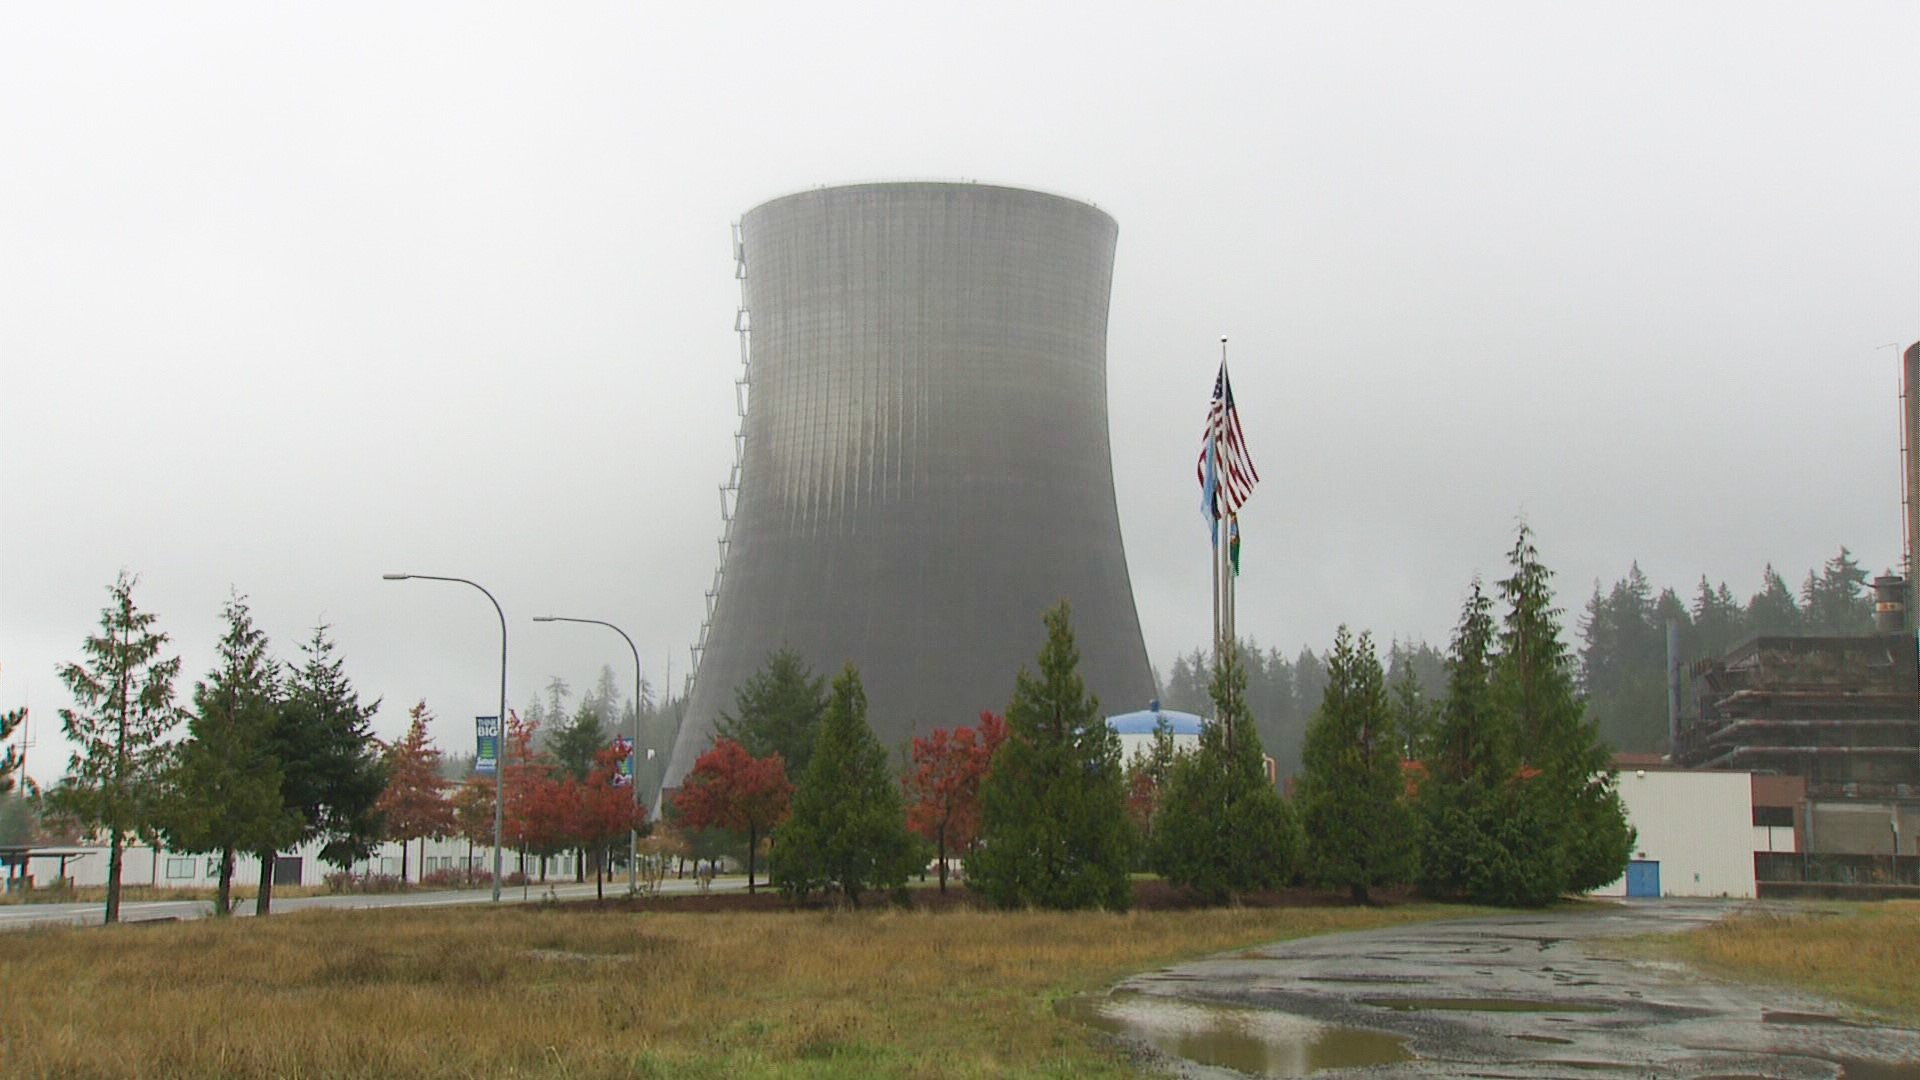 This Mothballed Nuke Plant Is Washington S Weirdest Movie Set Beyond Abandoned King5 Com,Live Laugh Love Wooden Signs